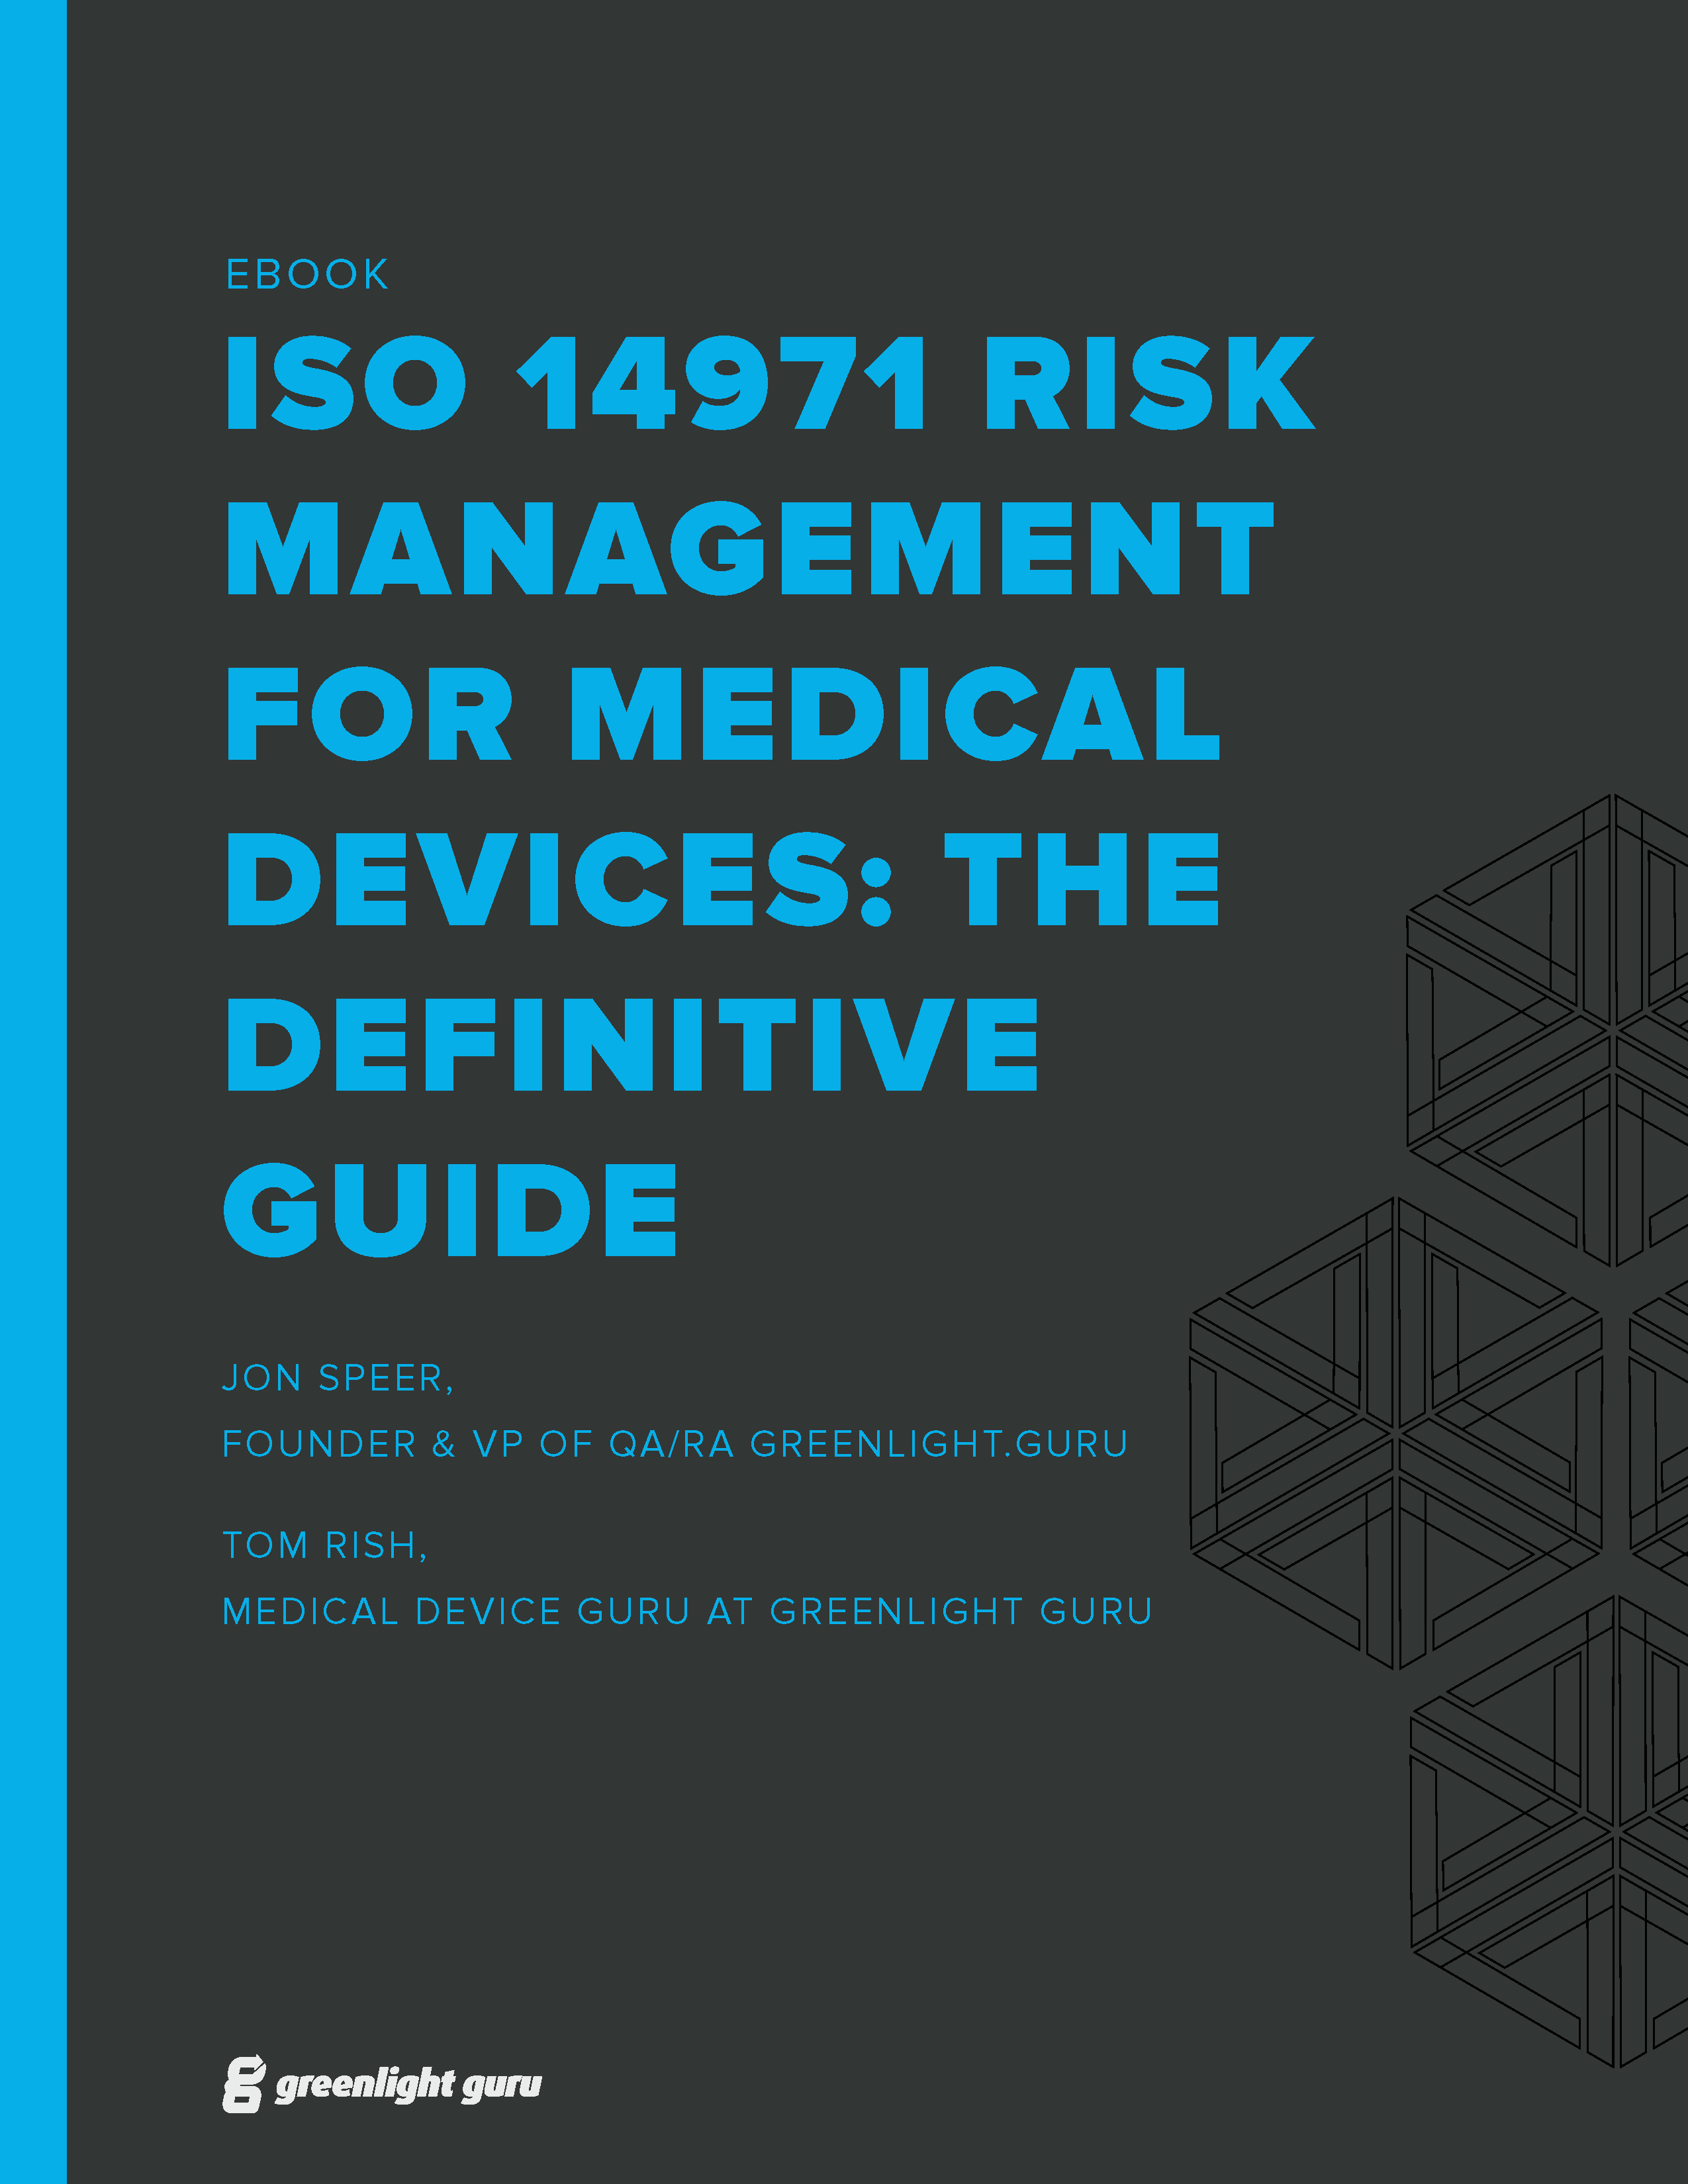 (cover) Definitive Guide to ISO 14971-2019 Risk Management for Medical Devices_Greenlight Guru